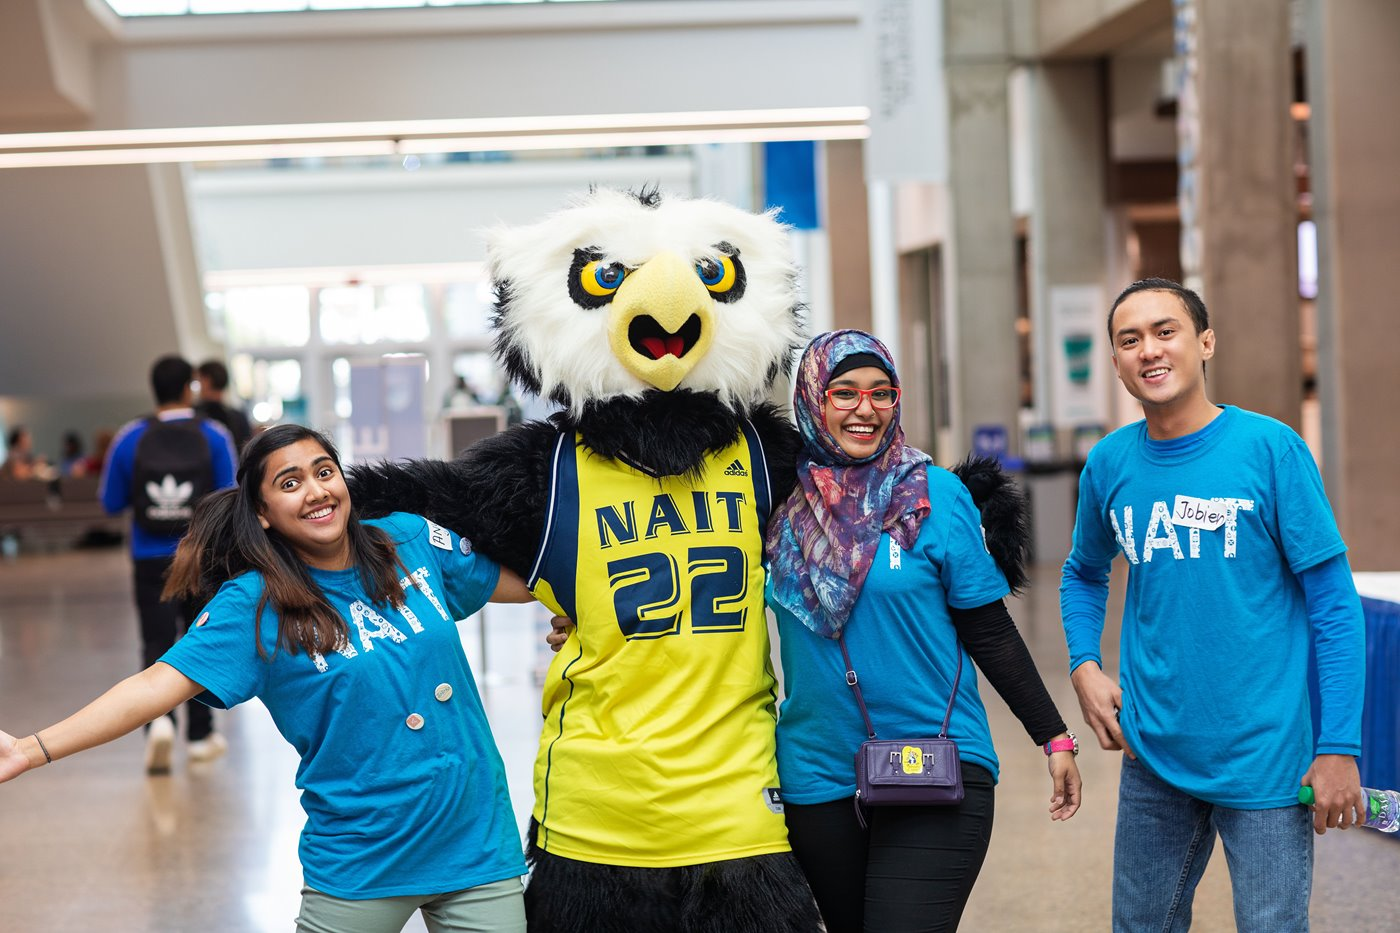 NAIT Volunteers